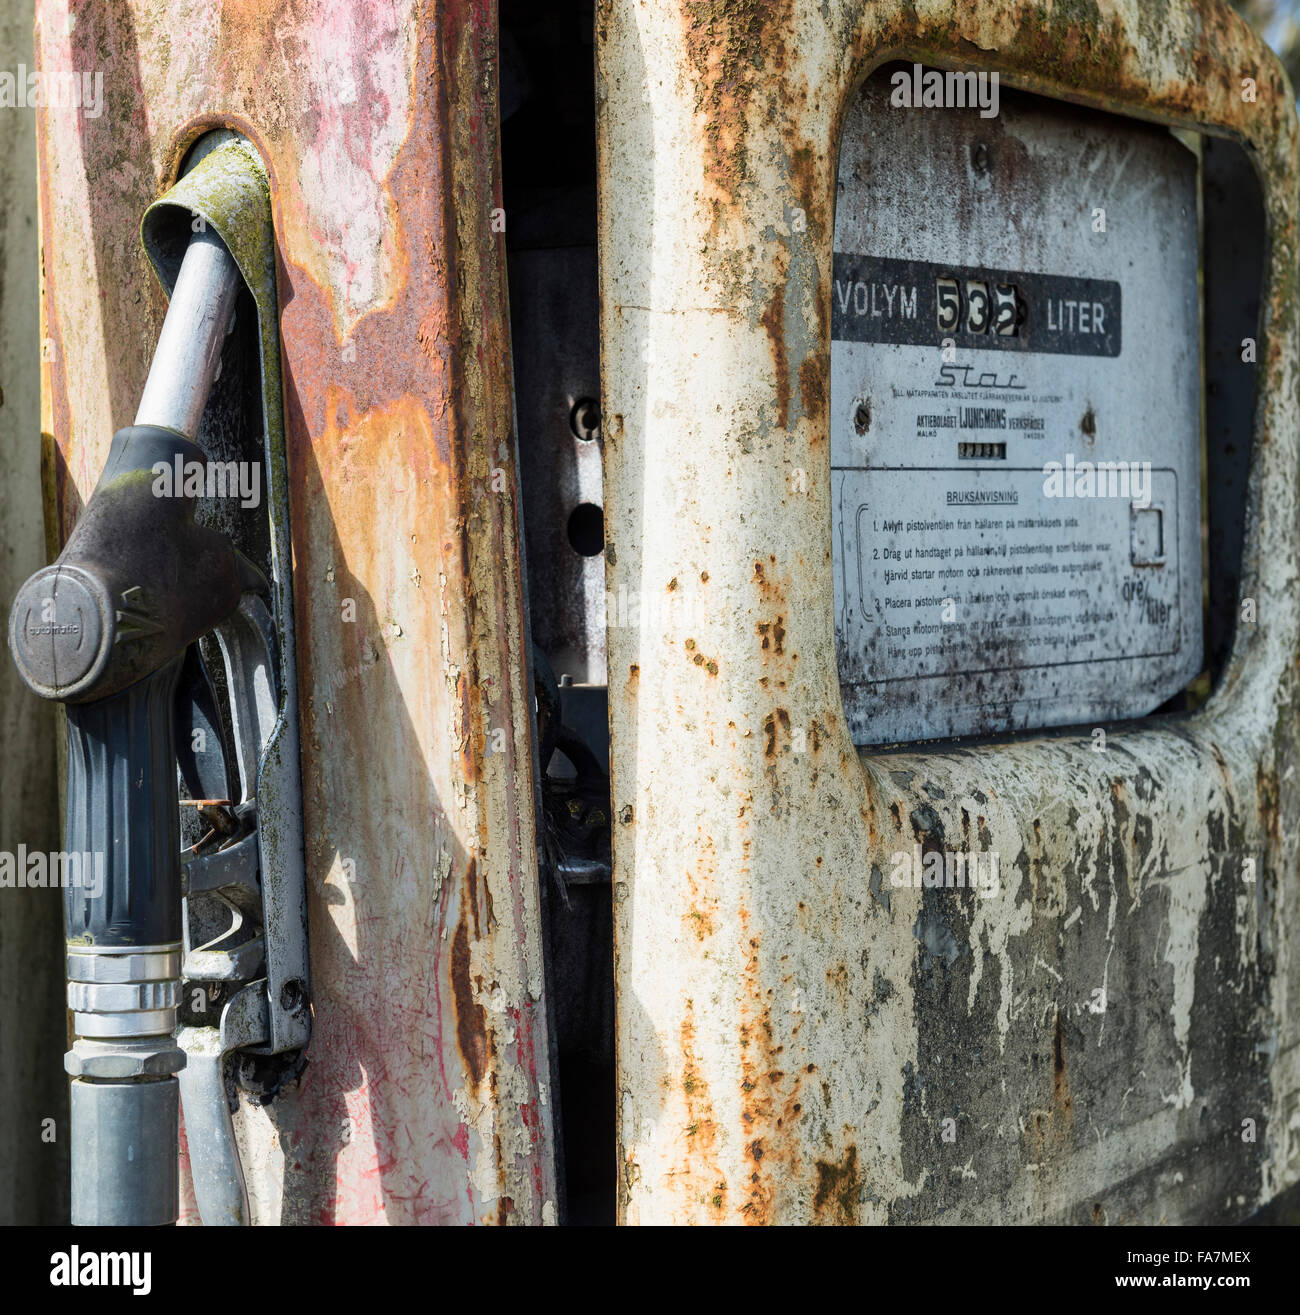 Old petrol pump - Stock Image